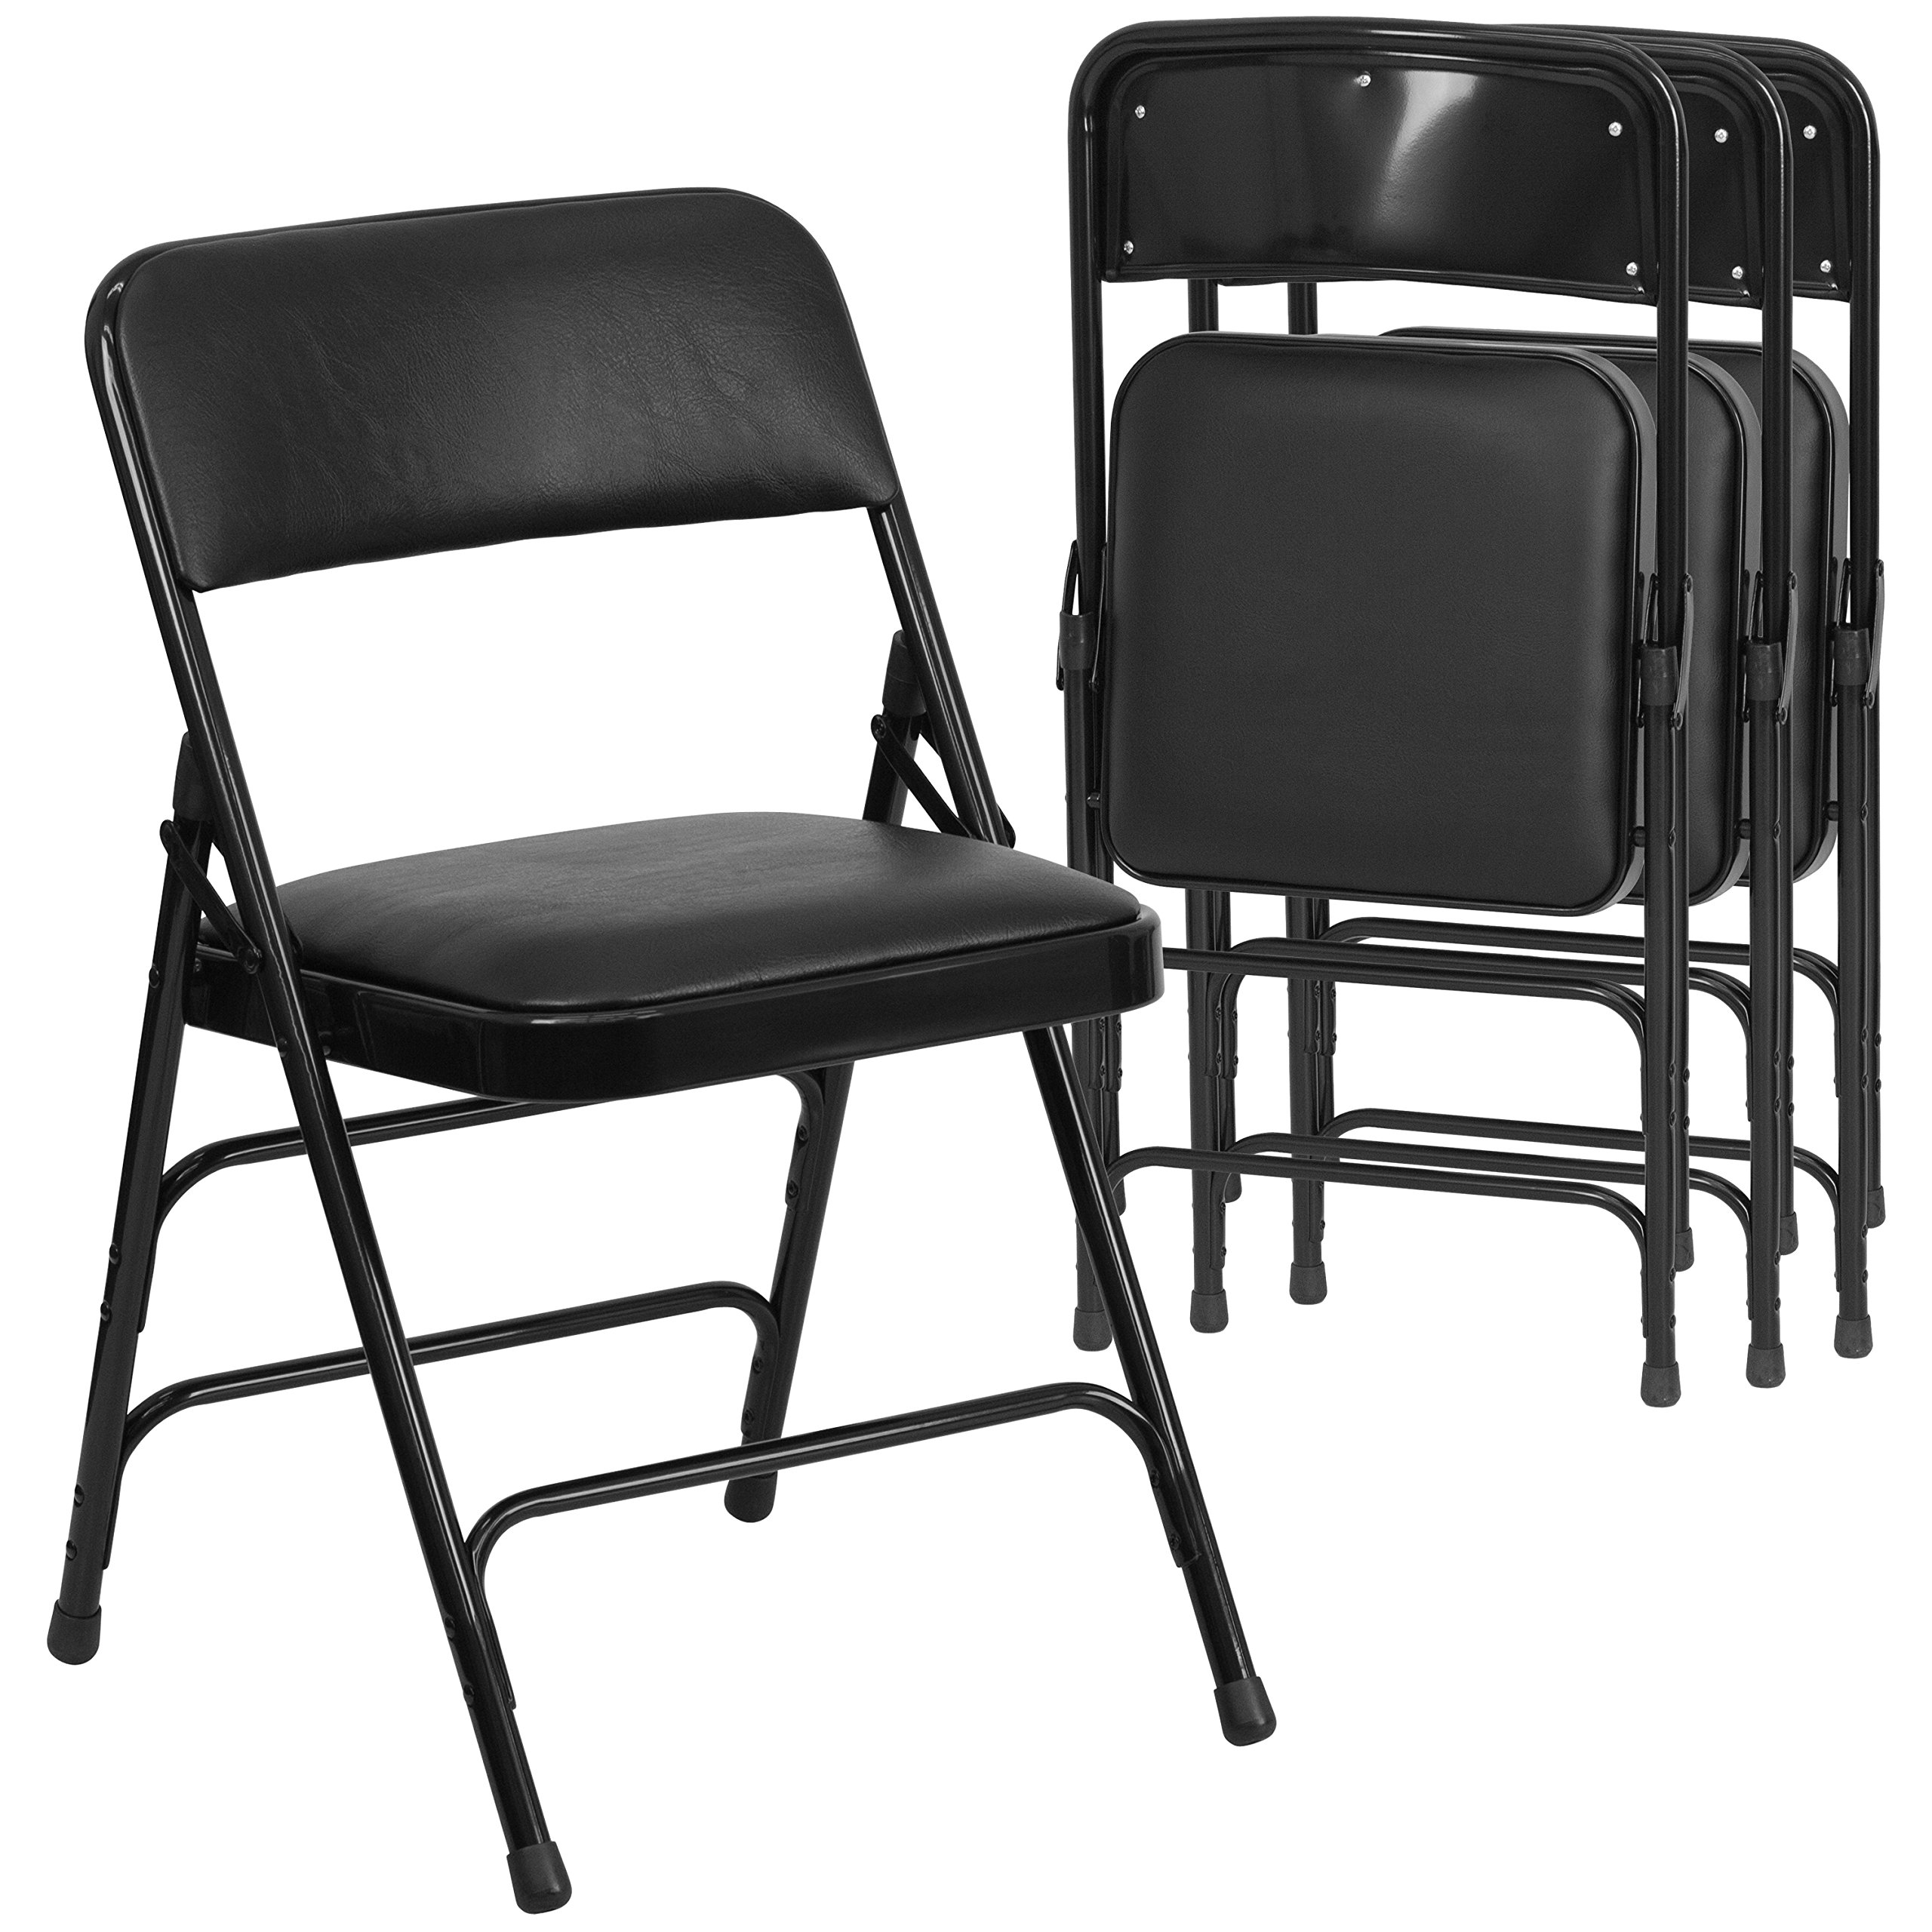 Best Rated in Folding Chairs & Helpful Customer Reviews Amazon